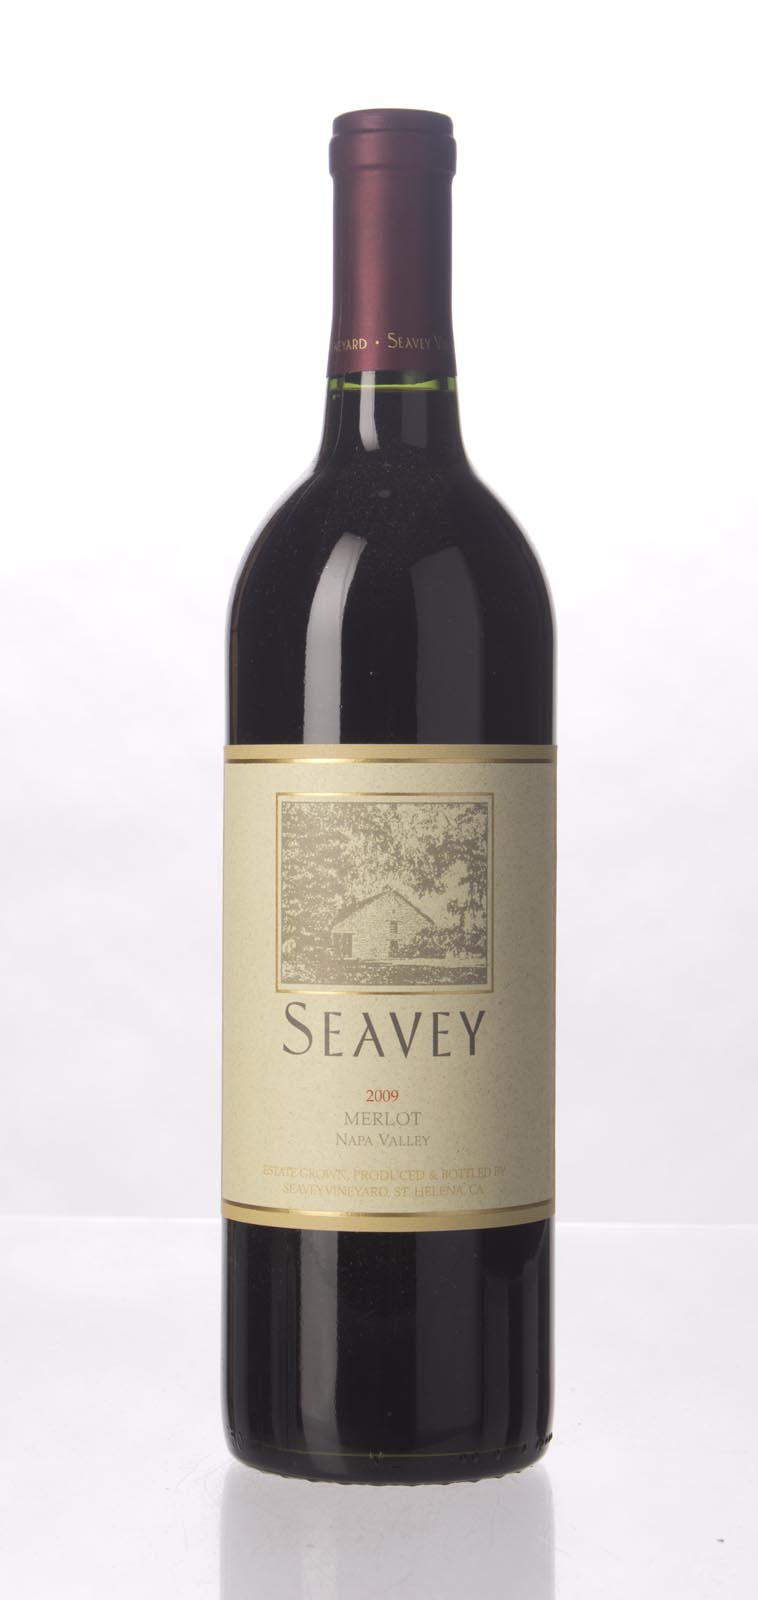 Seavey Merlot Napa Valley 2009, 750mL (ST90, WS90) from The BPW - Merchants of rare and fine wines.